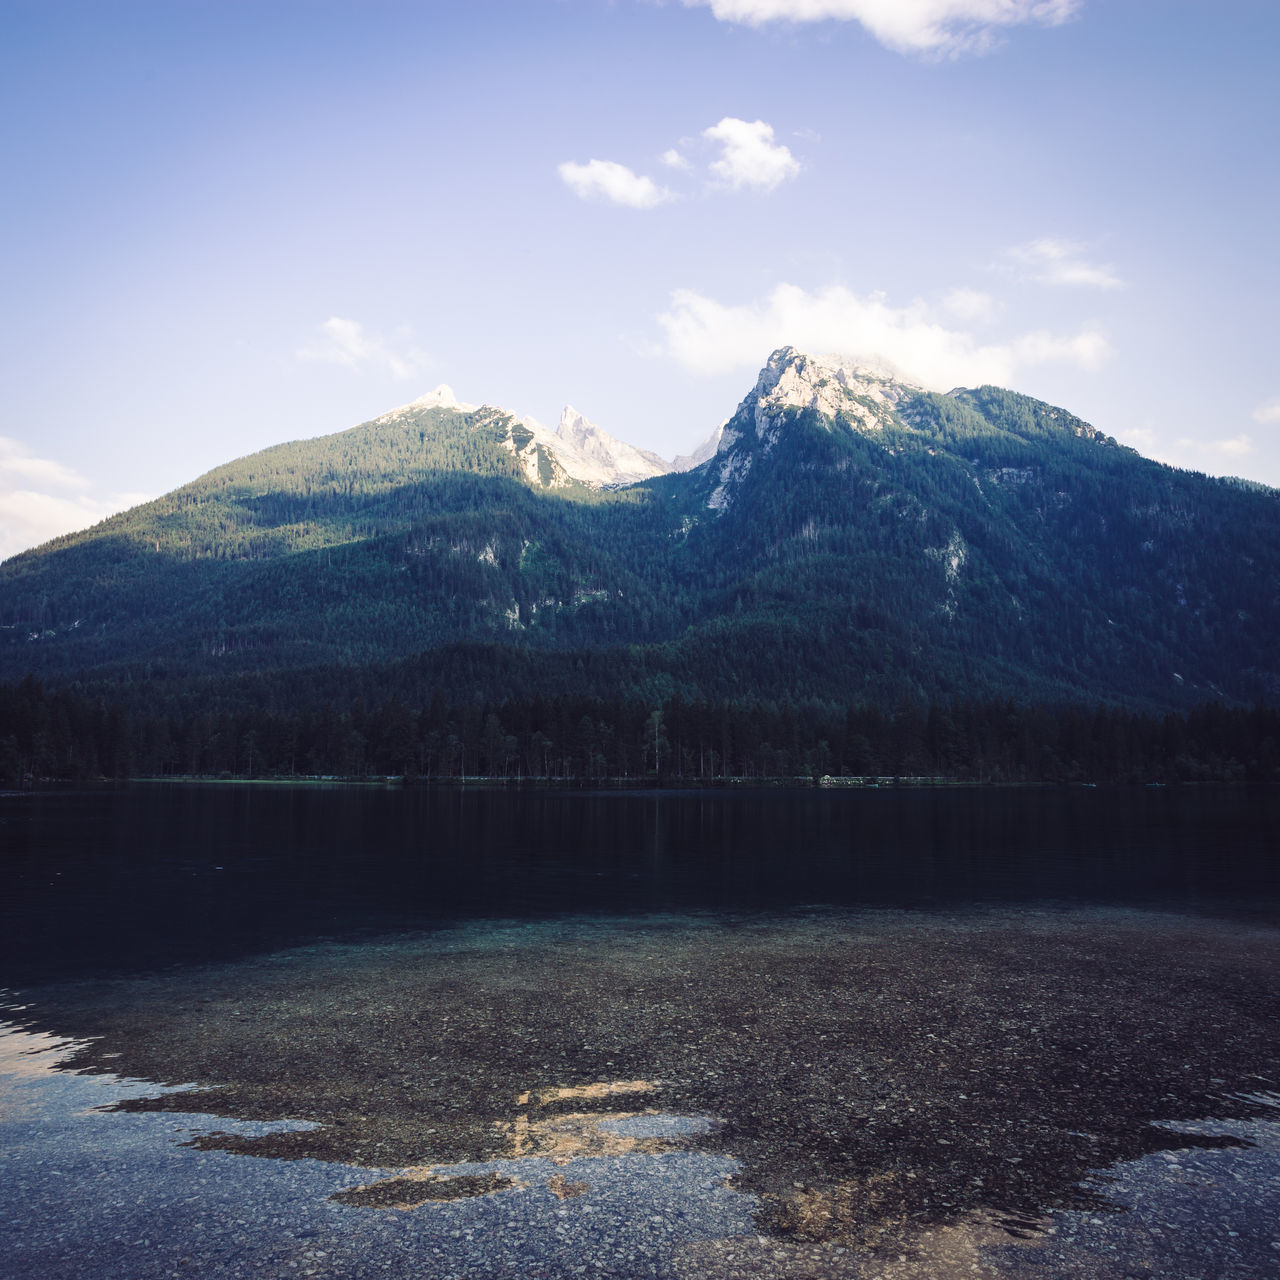 mountain, lake, beauty in nature, nature, sky, tranquility, snow, landscape, scenics, no people, outdoors, peak, scenery, day, range